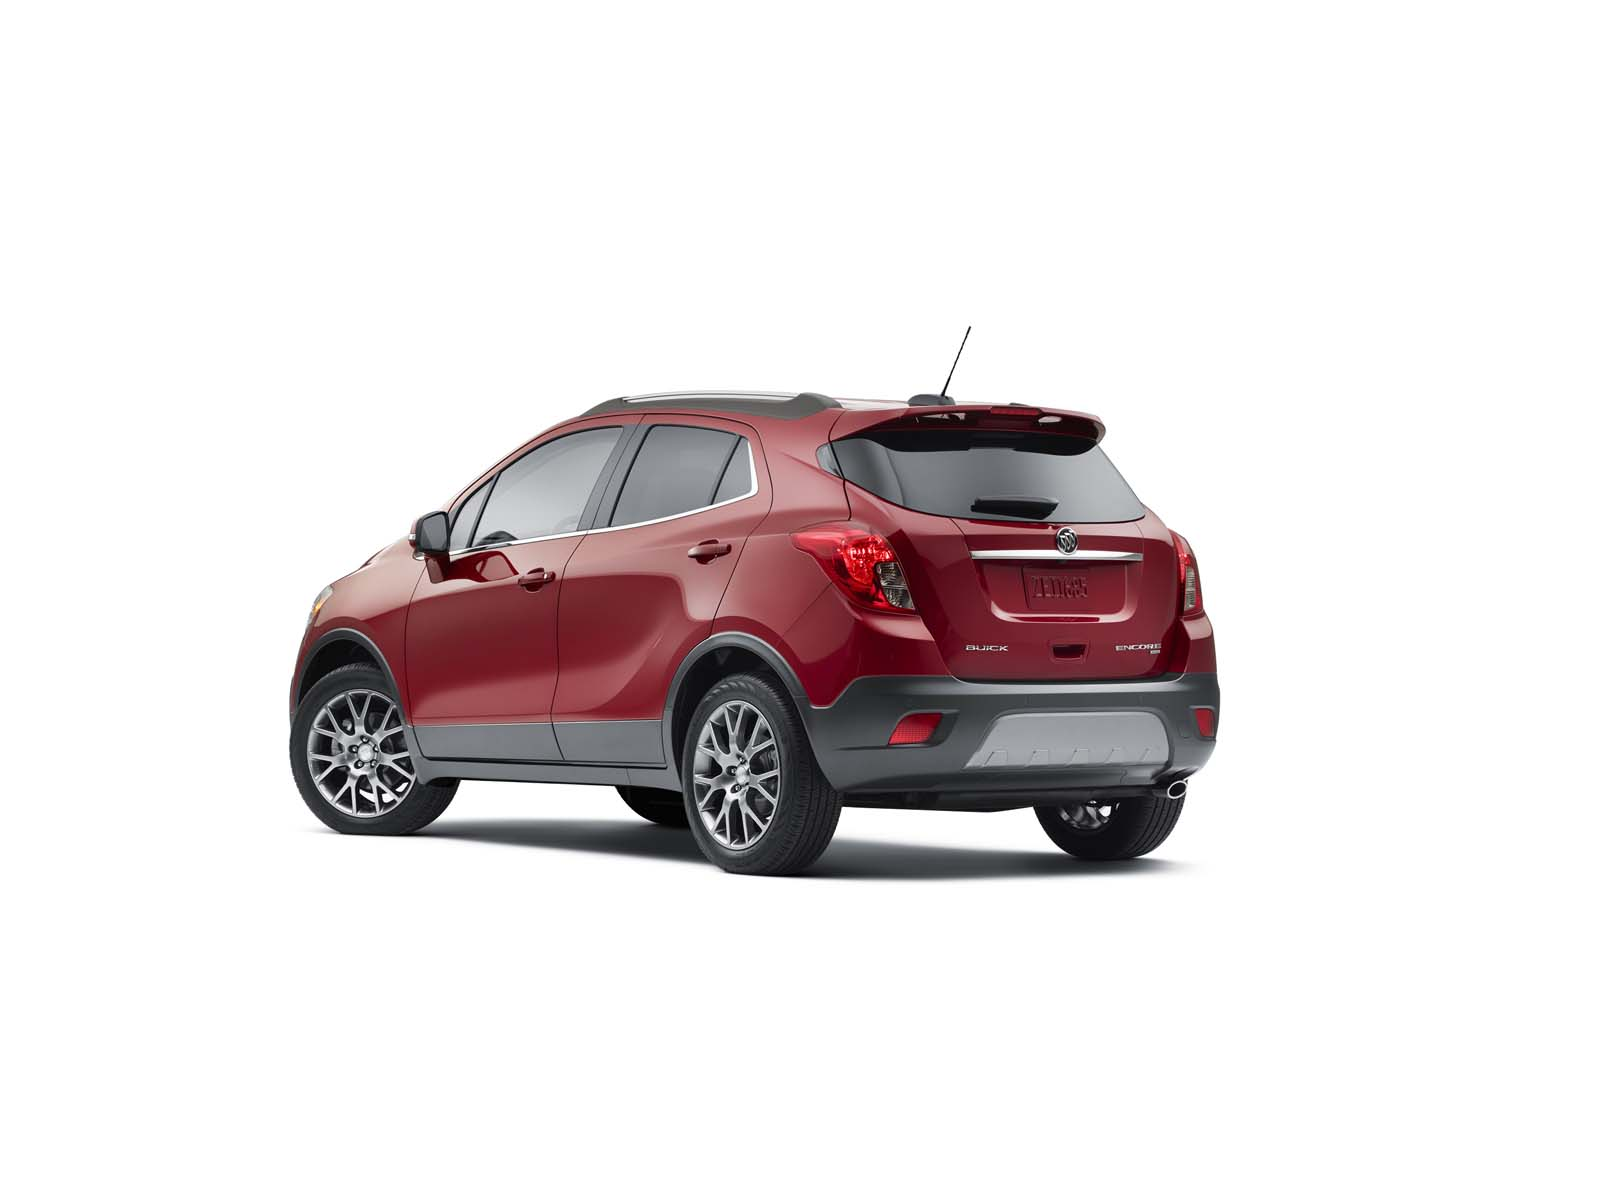 new and used buick encore prices photos reviews specs the car connection. Black Bedroom Furniture Sets. Home Design Ideas